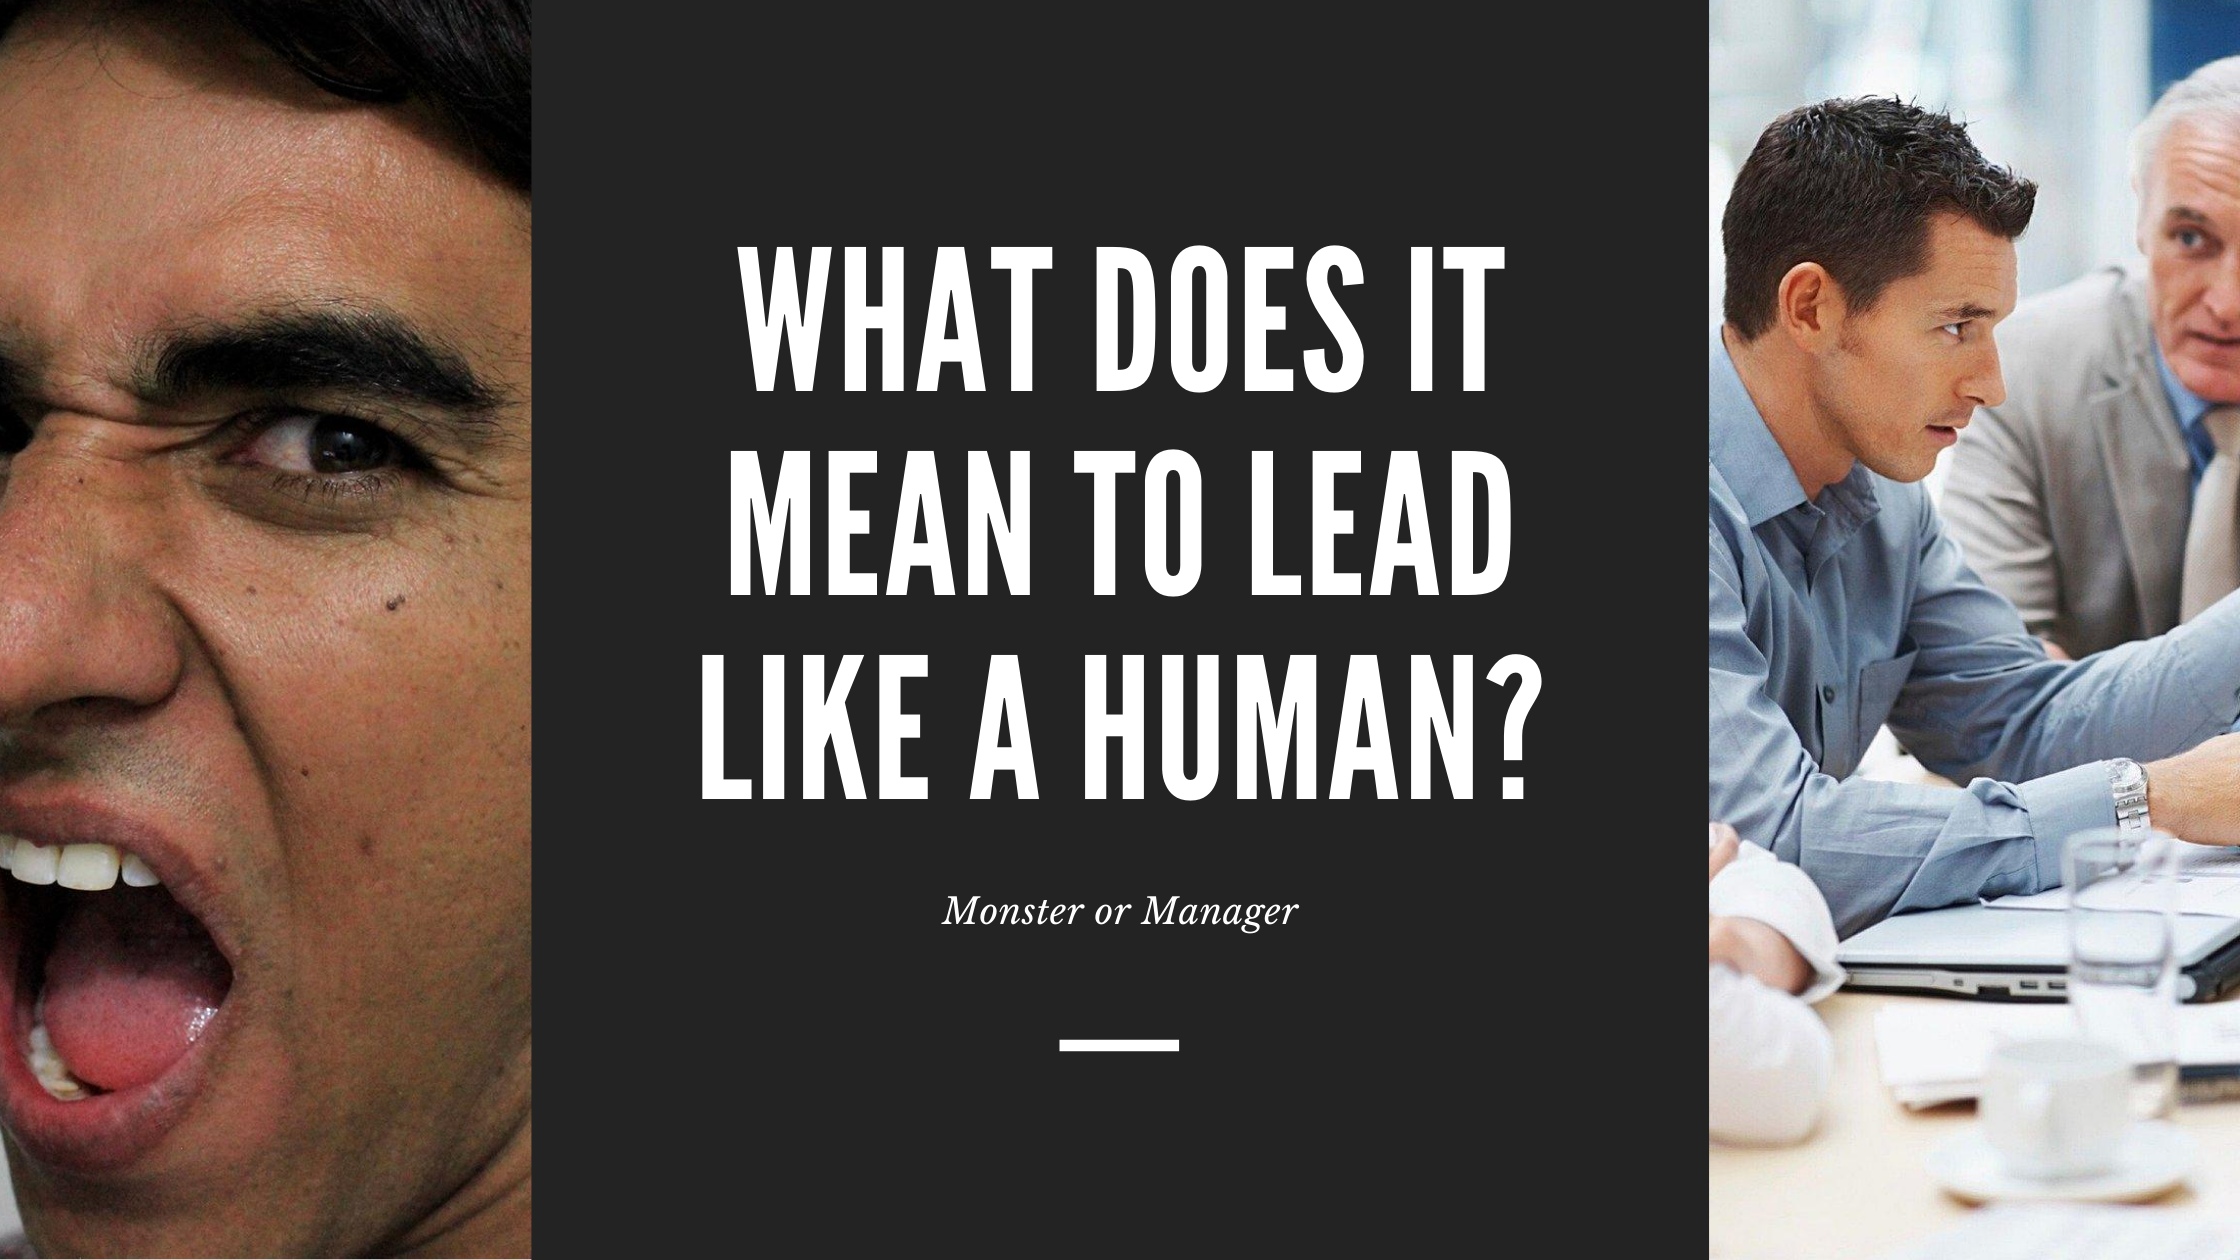 What Does It Mean to Lead Like a Human?